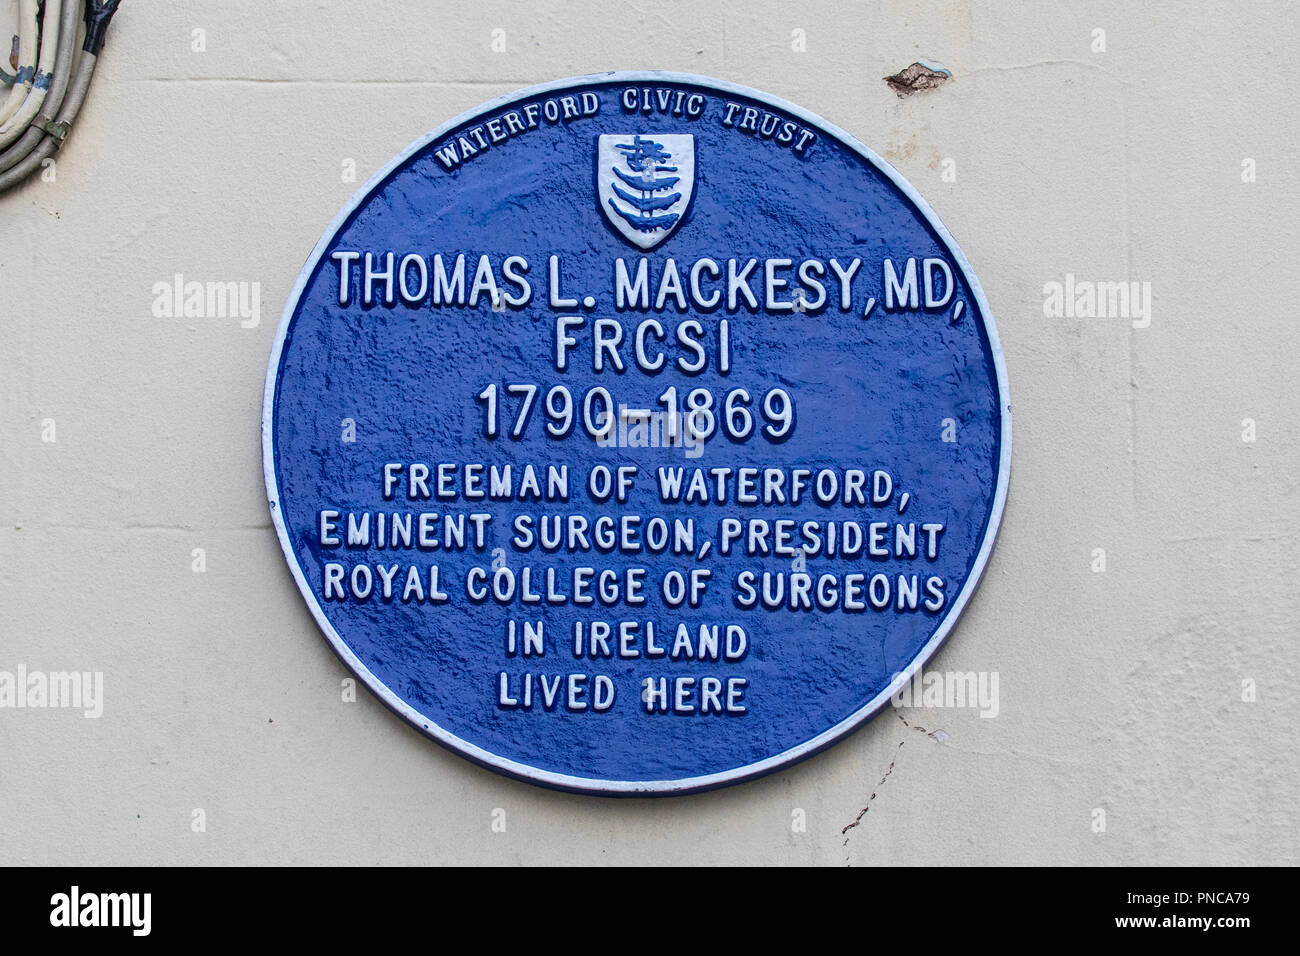 Waterford, Republic of Ireland - August 14th 2018: A blue plaque in the historic city of Waterford in Ireland, marking where Thomas L. Mackesy - famou - Stock Image